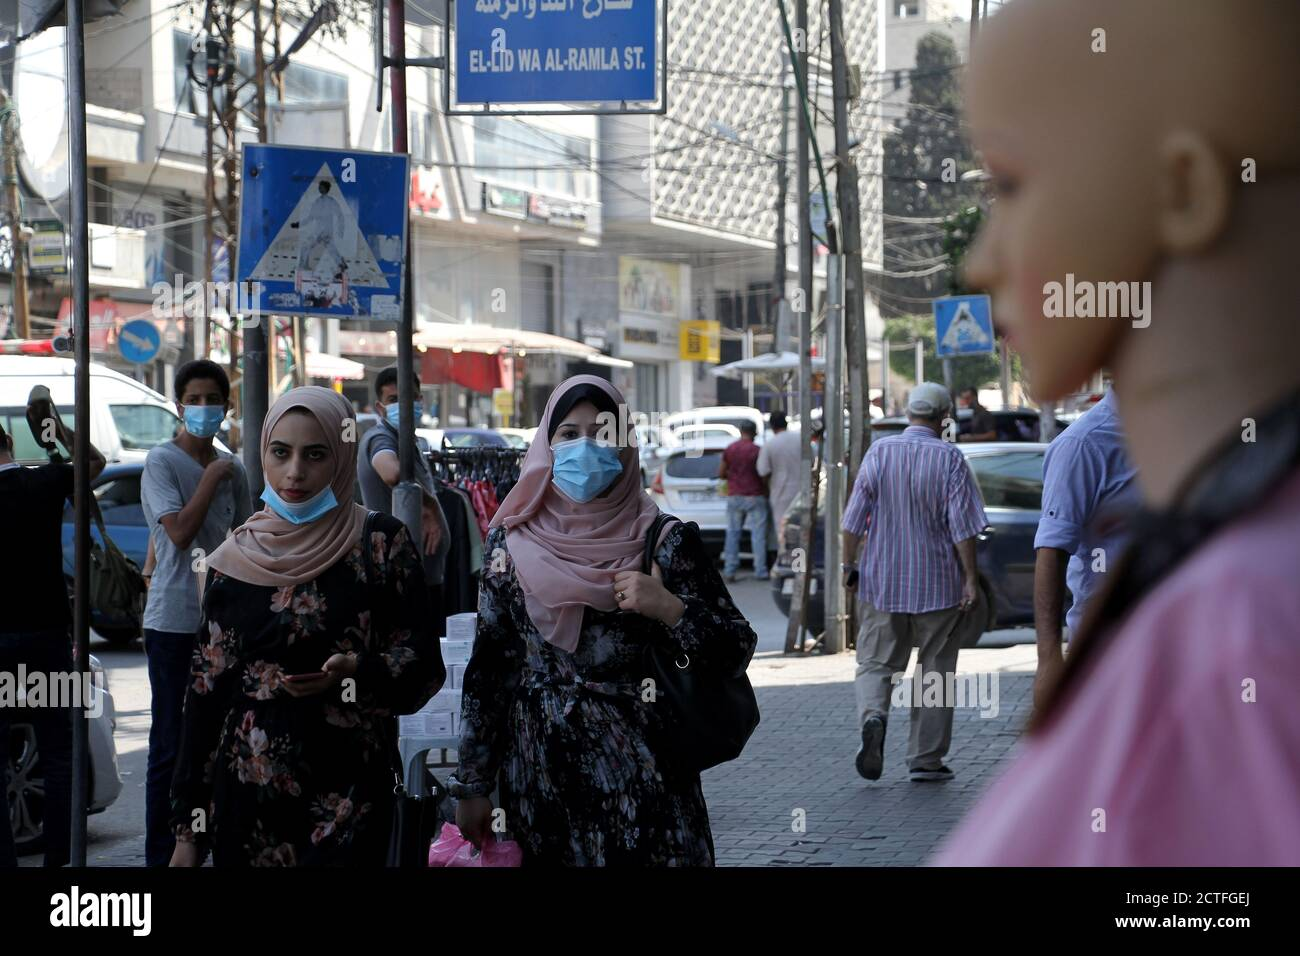 Gaza City. 22nd Sep, 2020. Palestinians wearing face masks walk on a street in Gaza City on Sept. 22, 2020. Palestine on Tuesday recorded 557 new cases infected with the novel coronavirus, bringing the total number of infections to 46,614. In the Gaza Strip, the Hamas-ruled government has recently eased the coronavirus restrictions. Credit: Rizek Abdeljawad/Xinhua/Alamy Live News Stock Photo